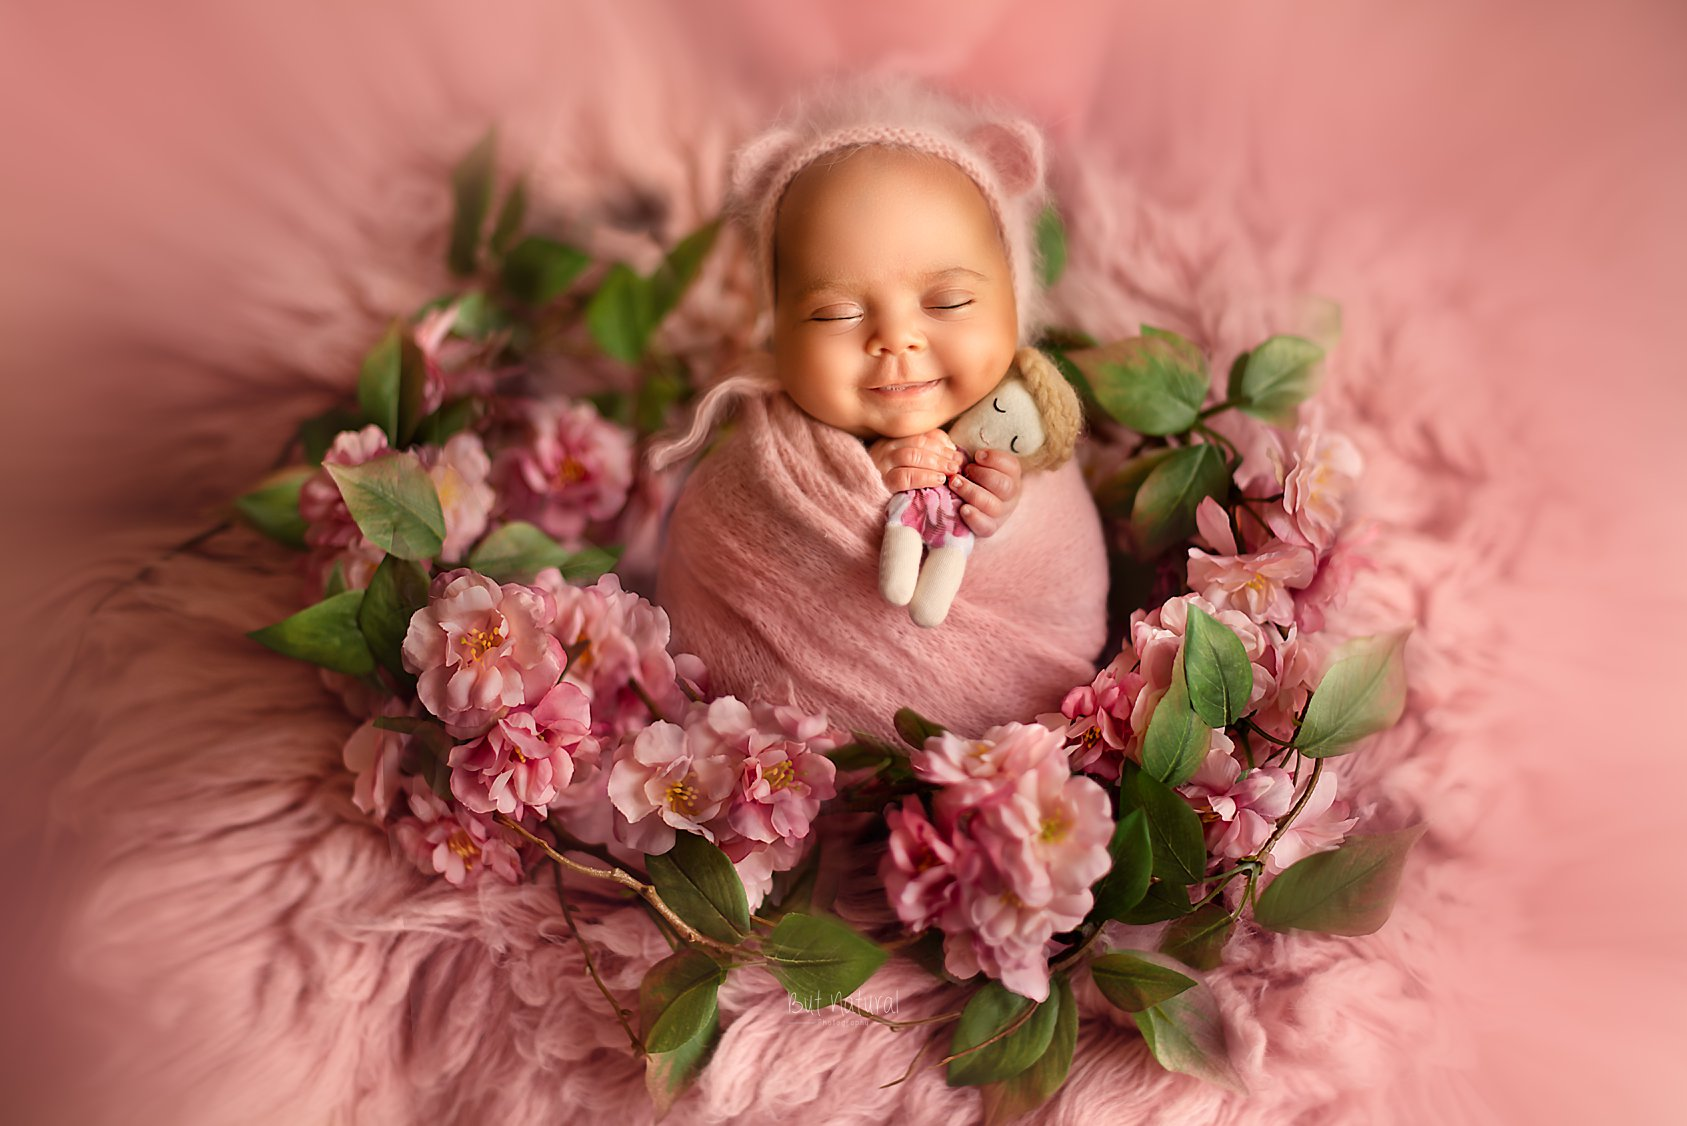 Newborn baby sleeping with a cute smile on a round-shaped flowered prop | But Natural Photography, Sujata Setia